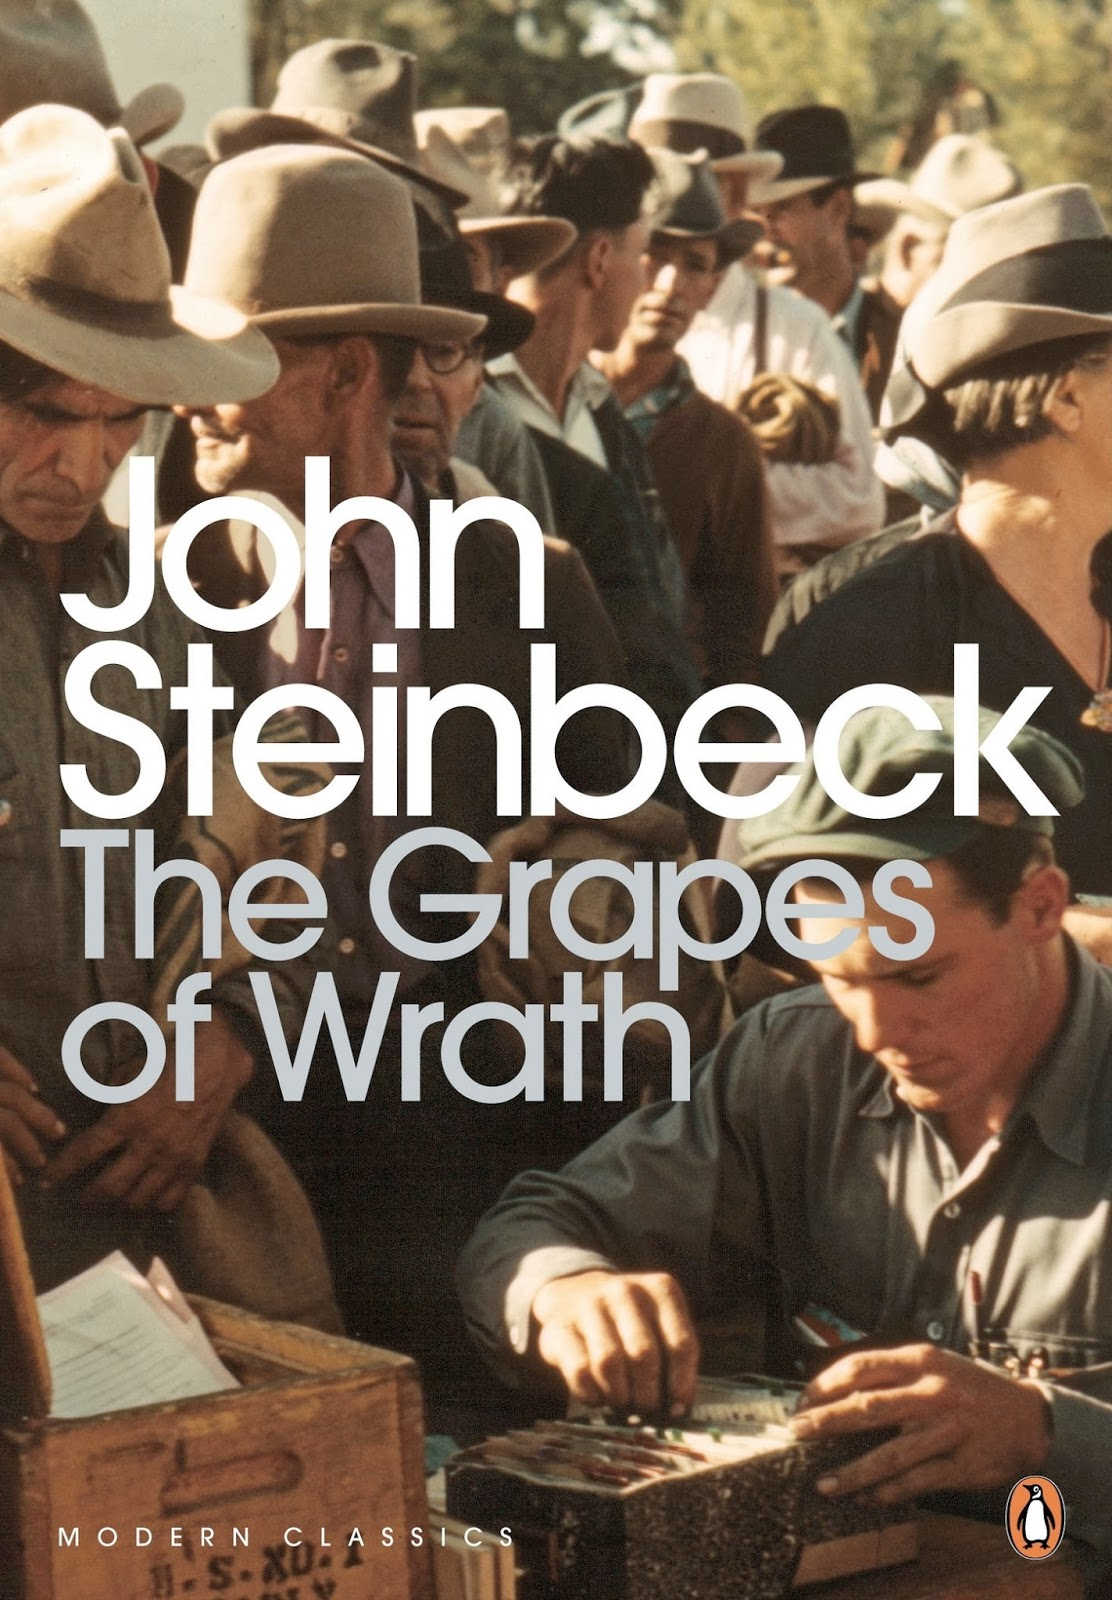 Critical essay on the grapes of wrath